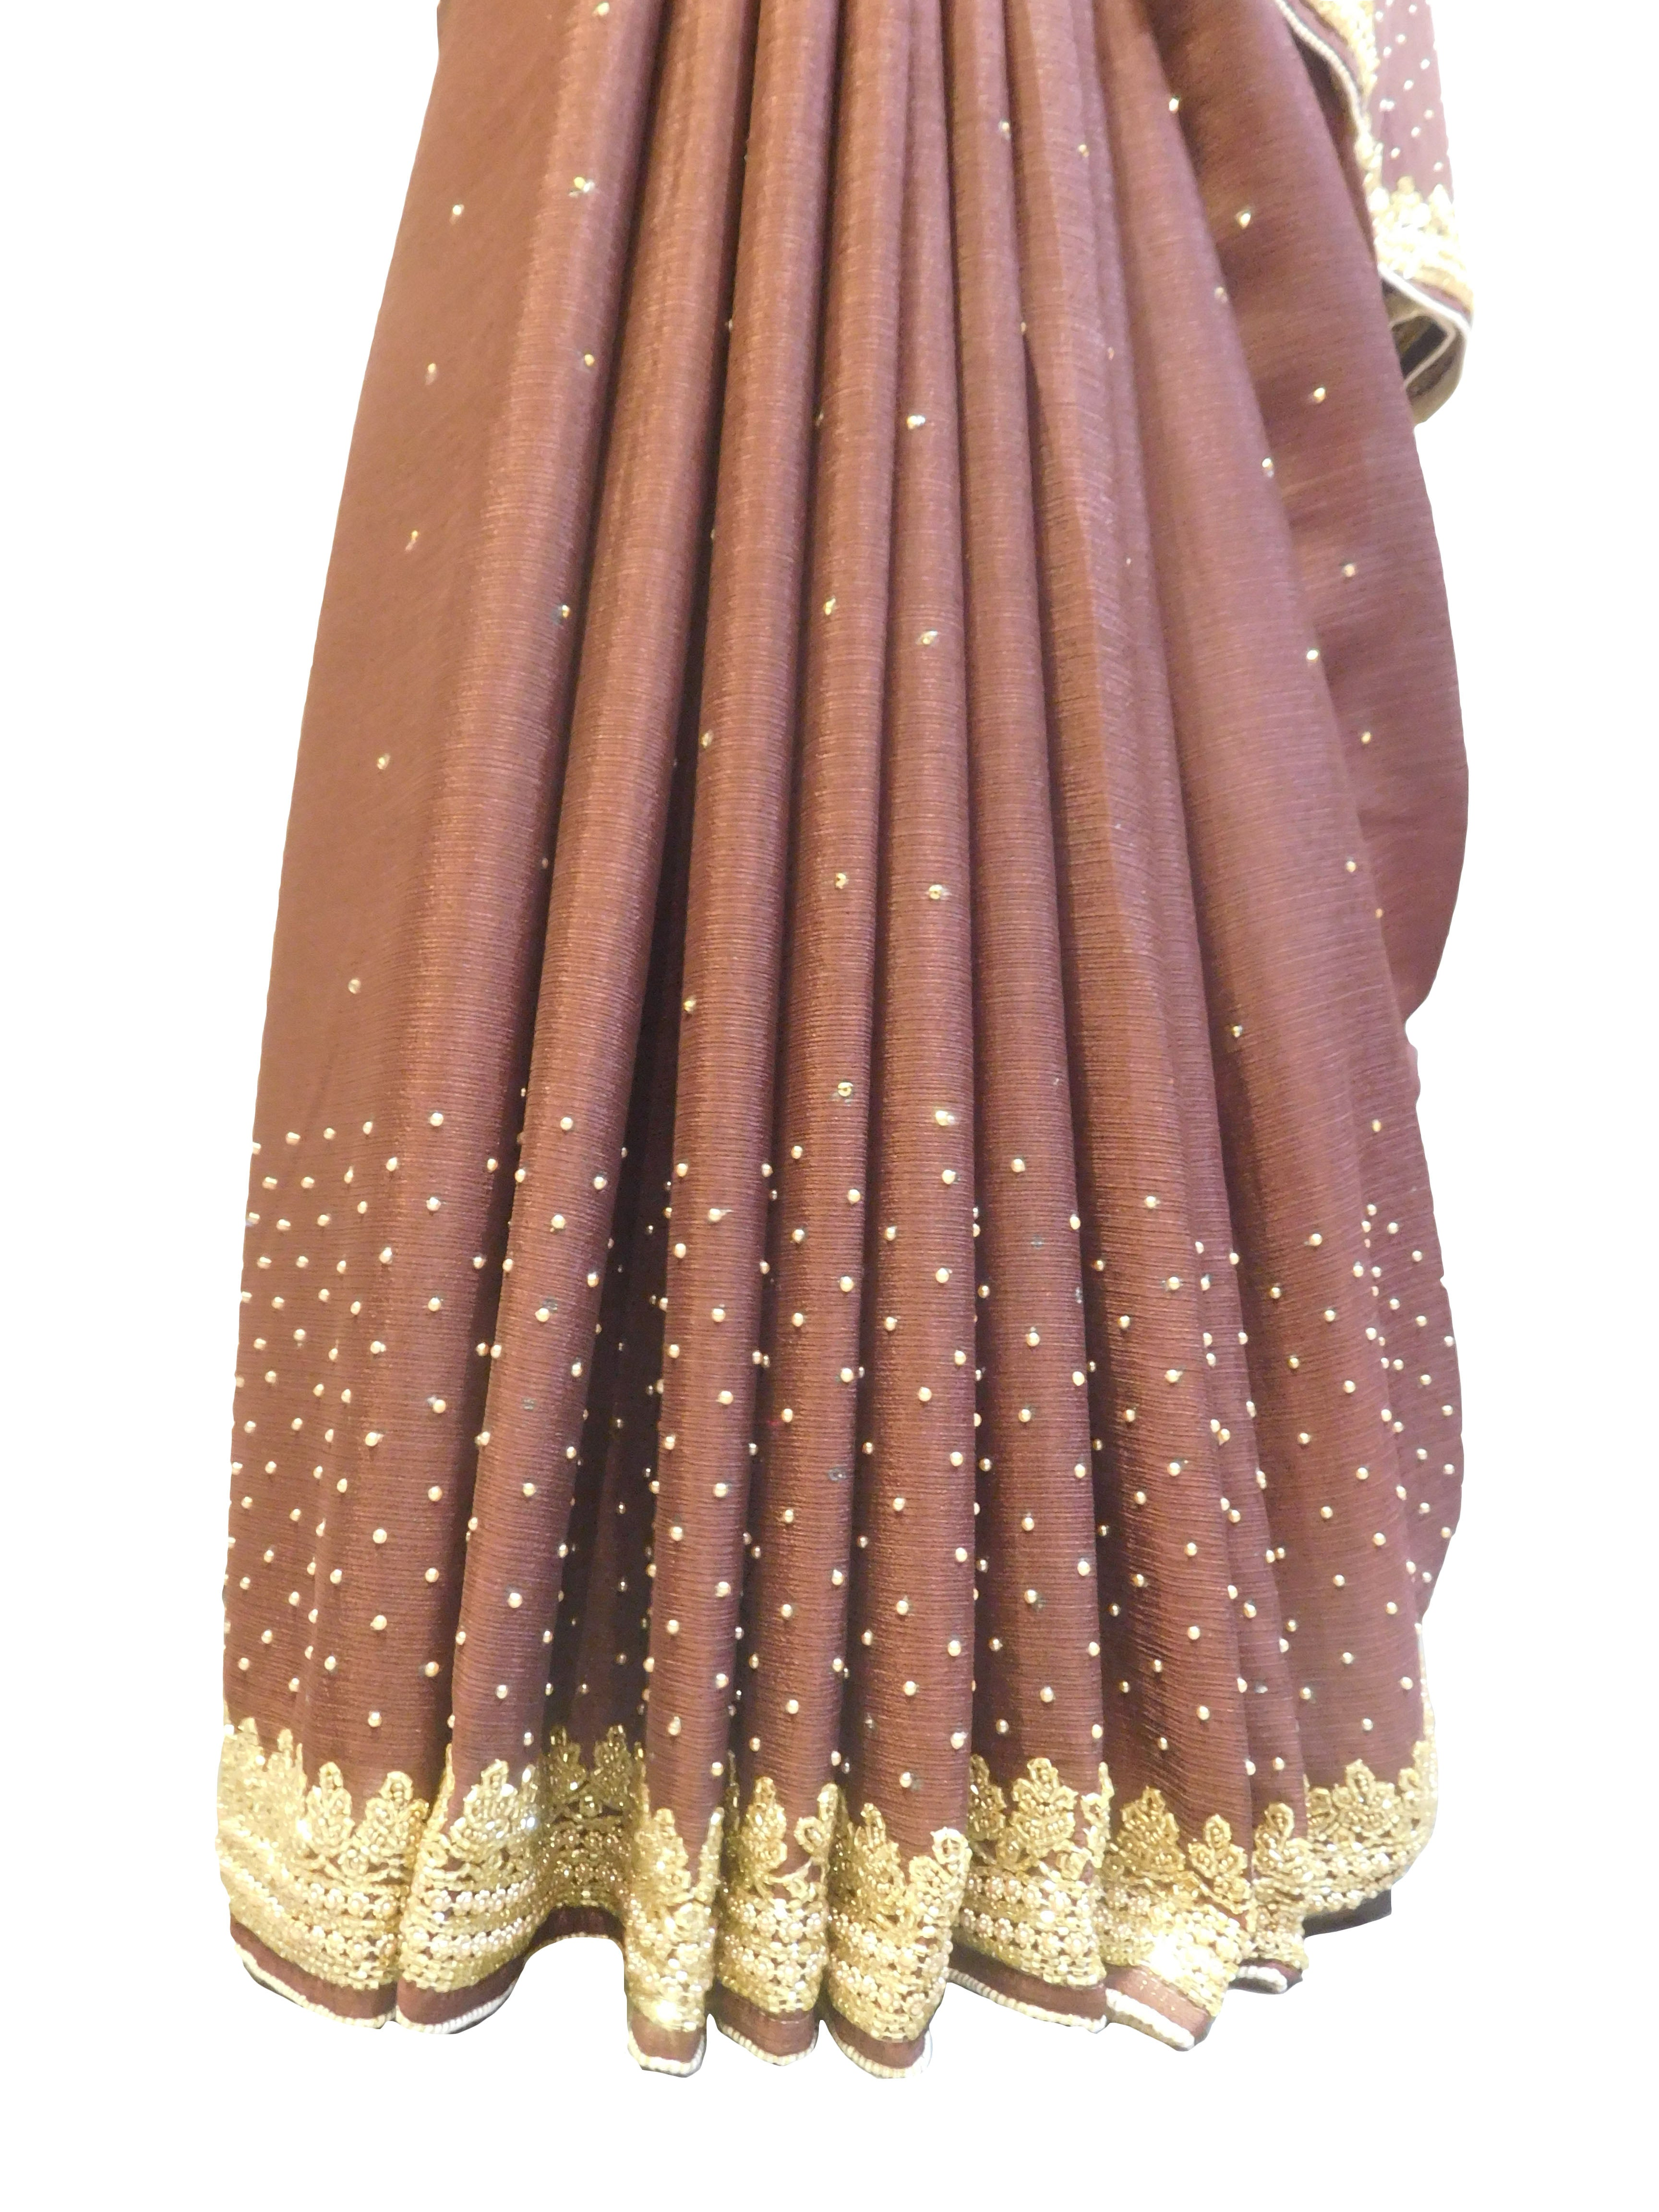 SMSAREE Coffee Brown Designer Wedding Partywear Crepe (Chinon) Beads Stone Pearl & Cutdana Hand Embroidery Work Bridal Saree Sari With Blouse Piece E723